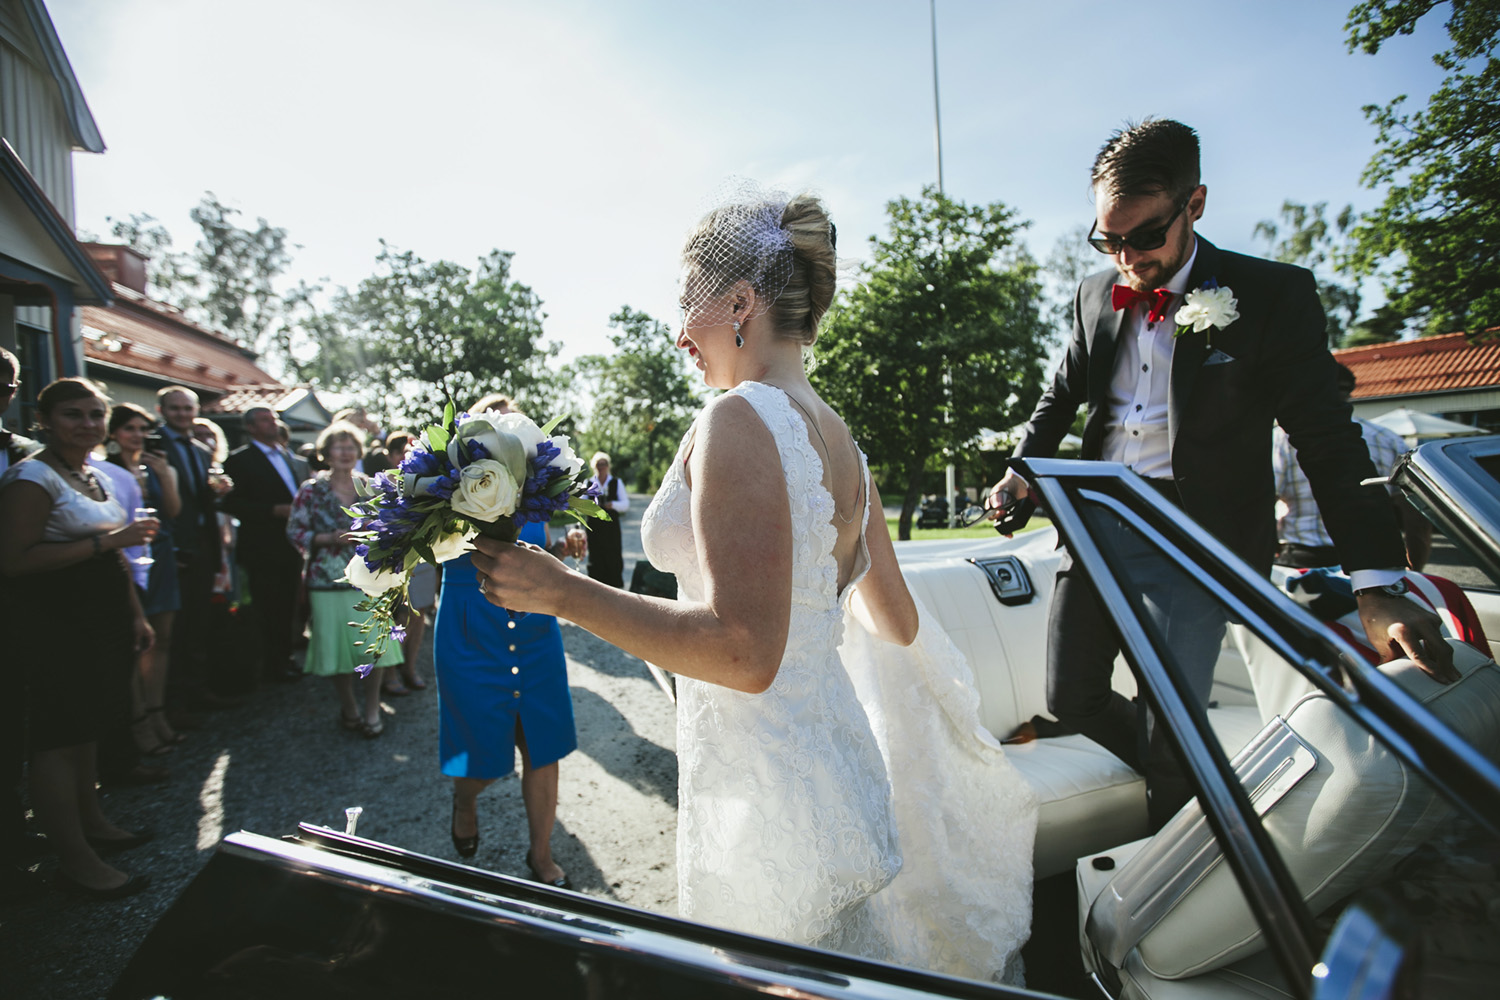 Brandon_werth_Sweden_wedding_Photographer_baltic_sea_70.jpg